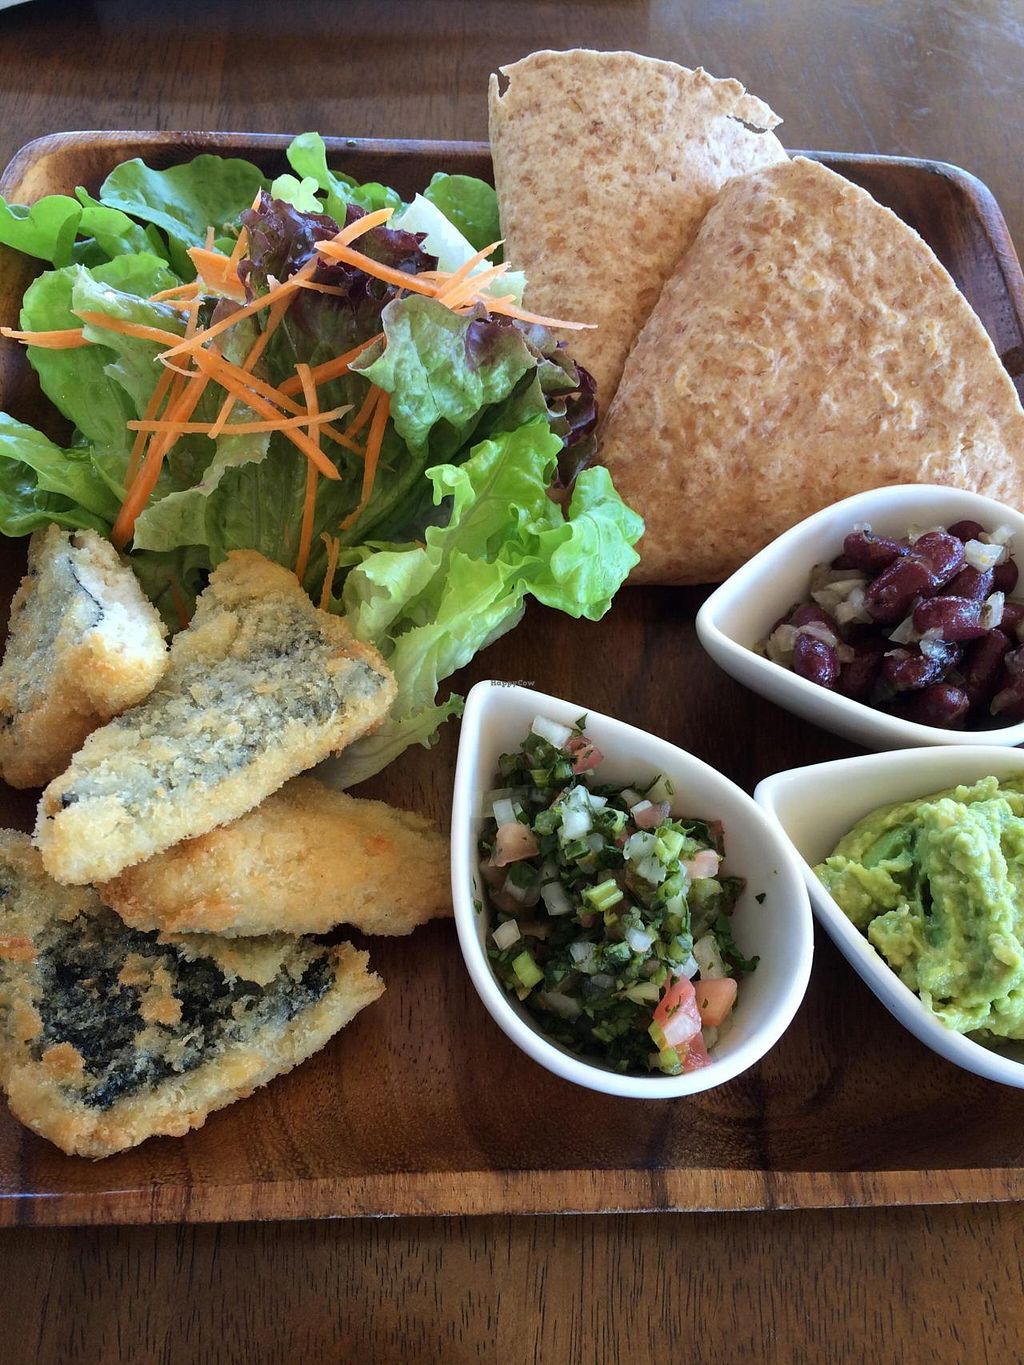 """Photo of Tami's  by <a href=""""/members/profile/Vegeiko"""">Vegeiko</a> <br/>Vege fish tacos set, what a bliss!! <br/> June 13, 2015  - <a href='/contact/abuse/image/51601/105875'>Report</a>"""